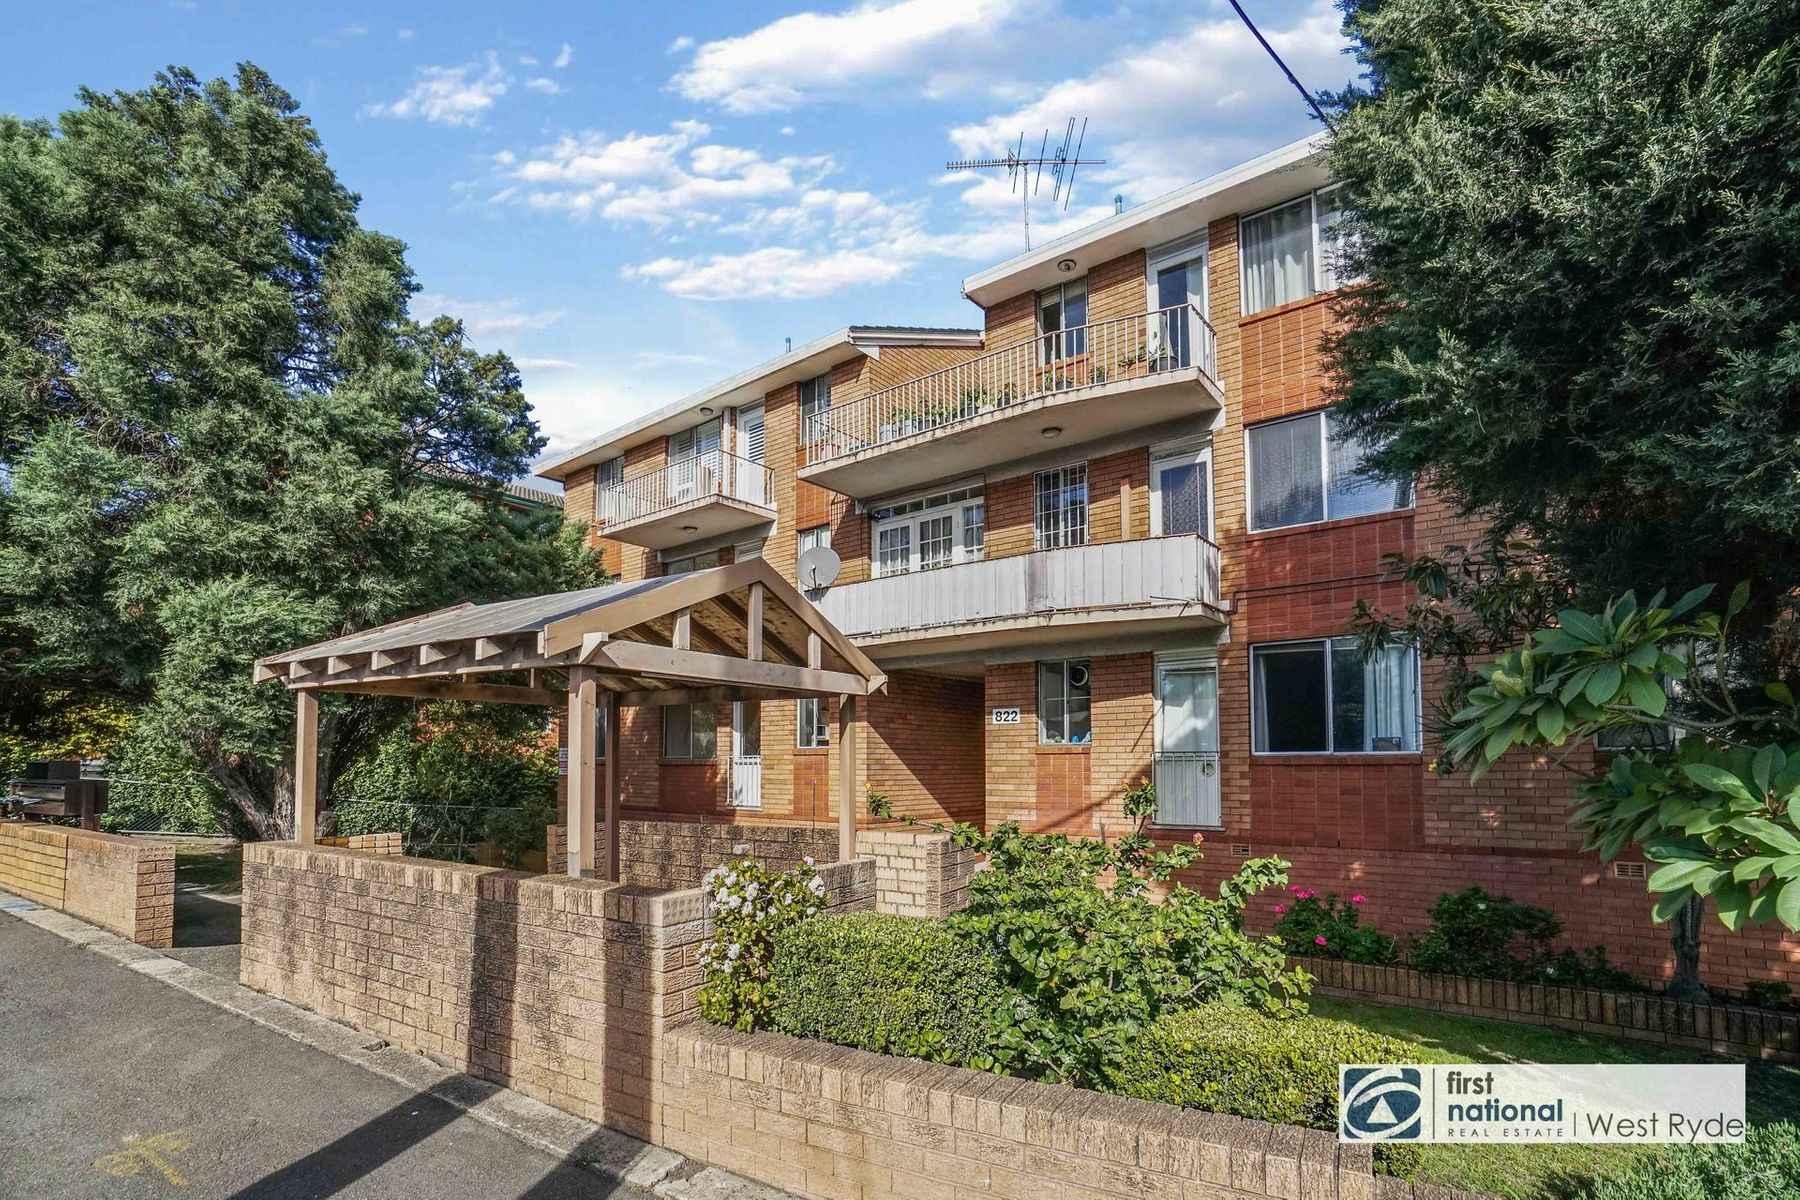 7/822 Victoria Road, Ryde, NSW 2112